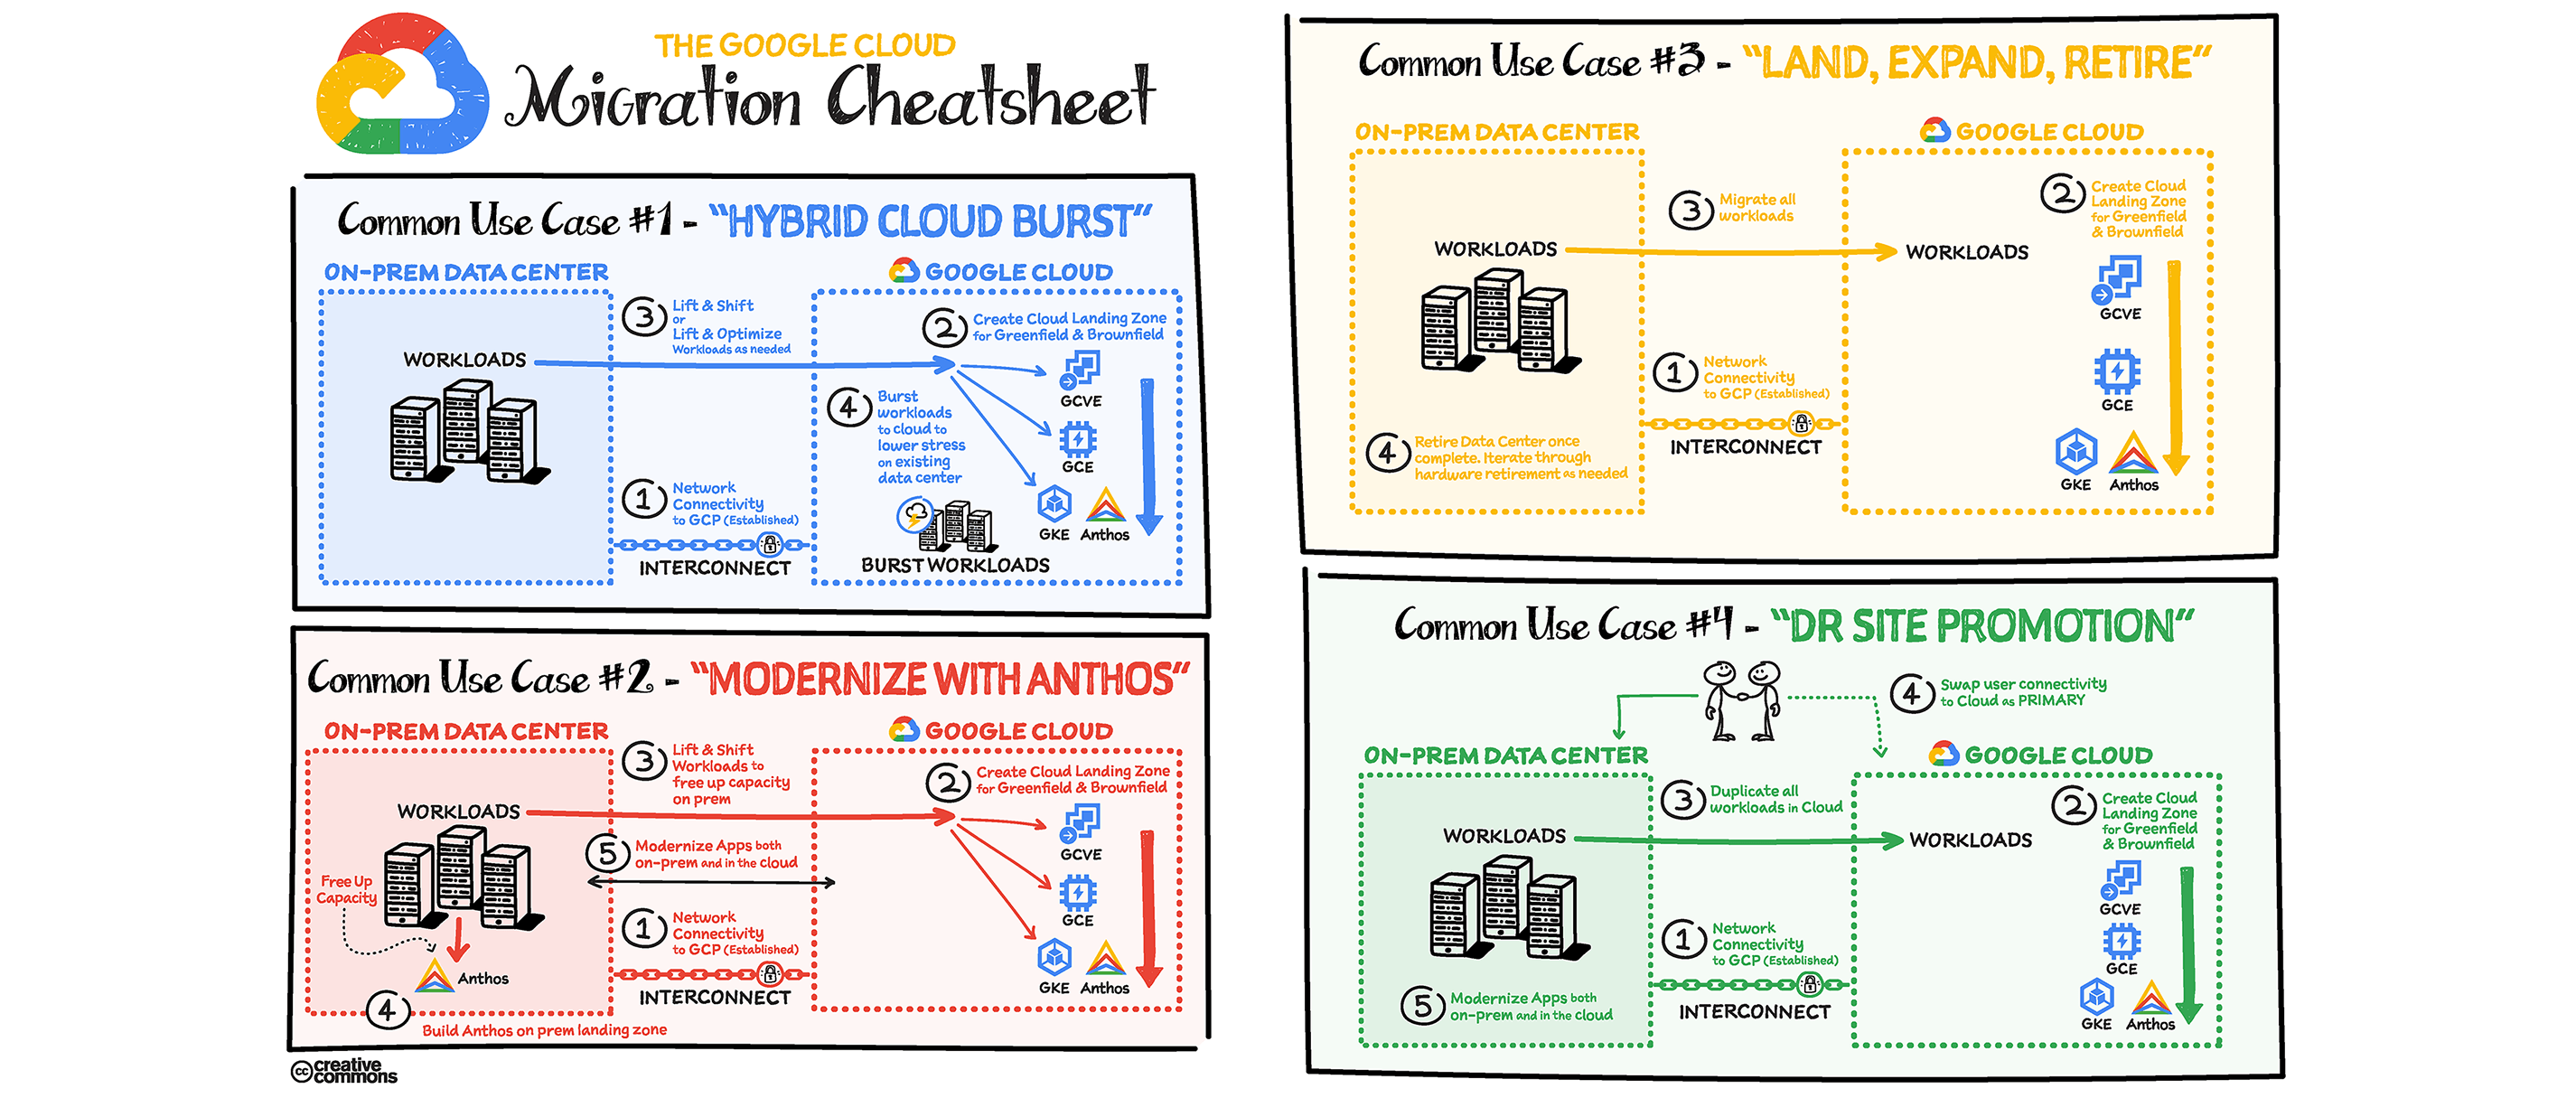 cloud-migration-cheatsheet